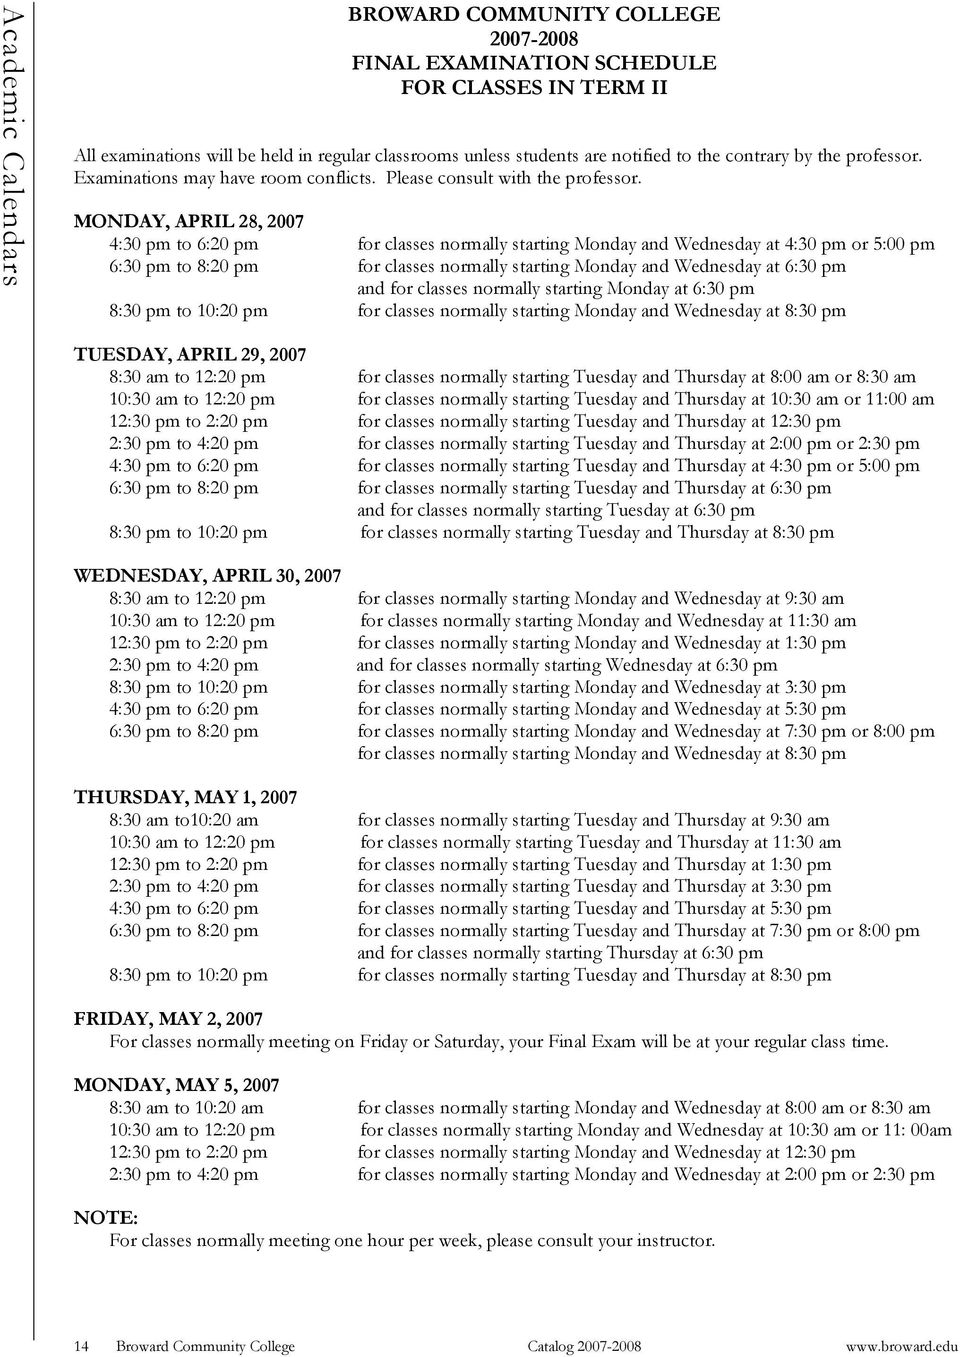 MONDAY, APRIL 28, 2007 4:30 pm to 6:20 pm for classes normally starting Monday and Wednesday at 4:30 pm or 5:00 pm 6:30 pm to 8:20 pm for classes normally starting Monday and Wednesday at 6:30 pm and